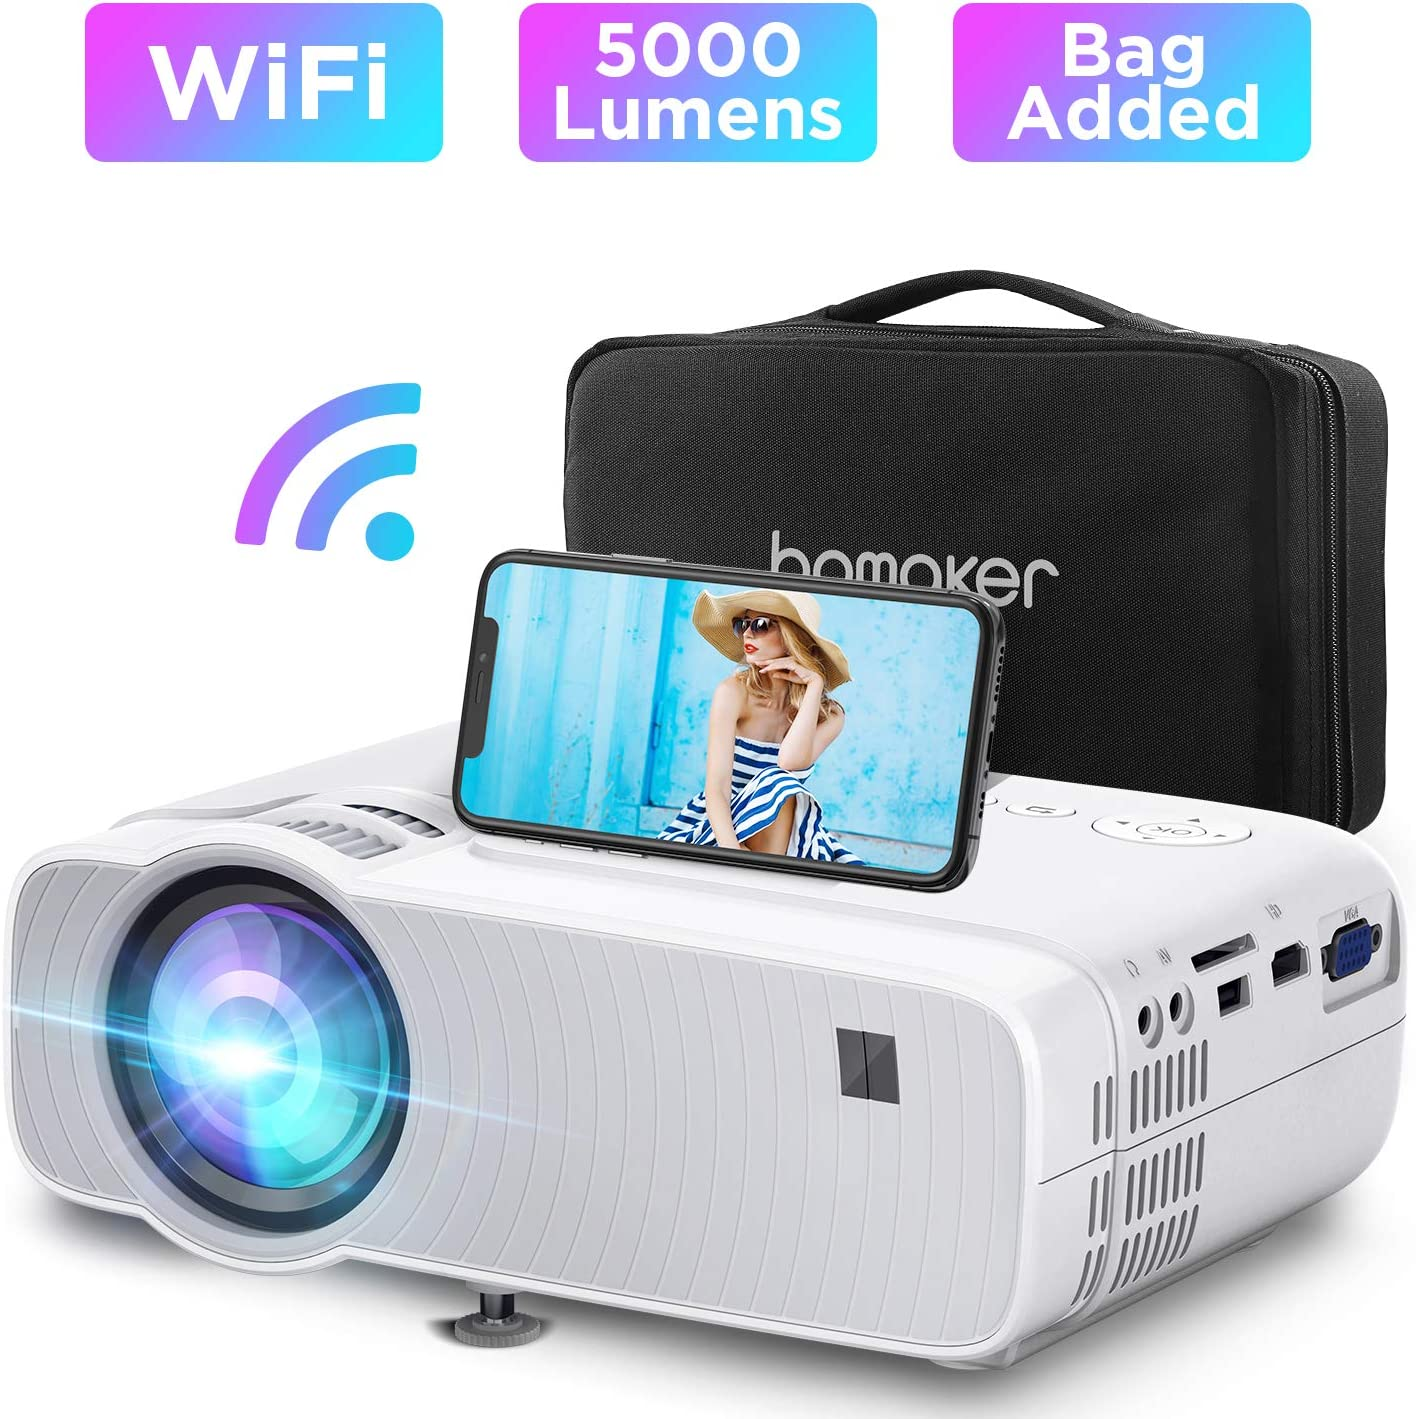 WiFi Mini Projector, BOMAKER 5000Lux Portable Outdoor Movie Projector, Wireless Screen Mirroring and Miracast,1080P Supported, 250'' Display, Compatible with TV Stick, PS4, PCs, iOS, Android, Windows